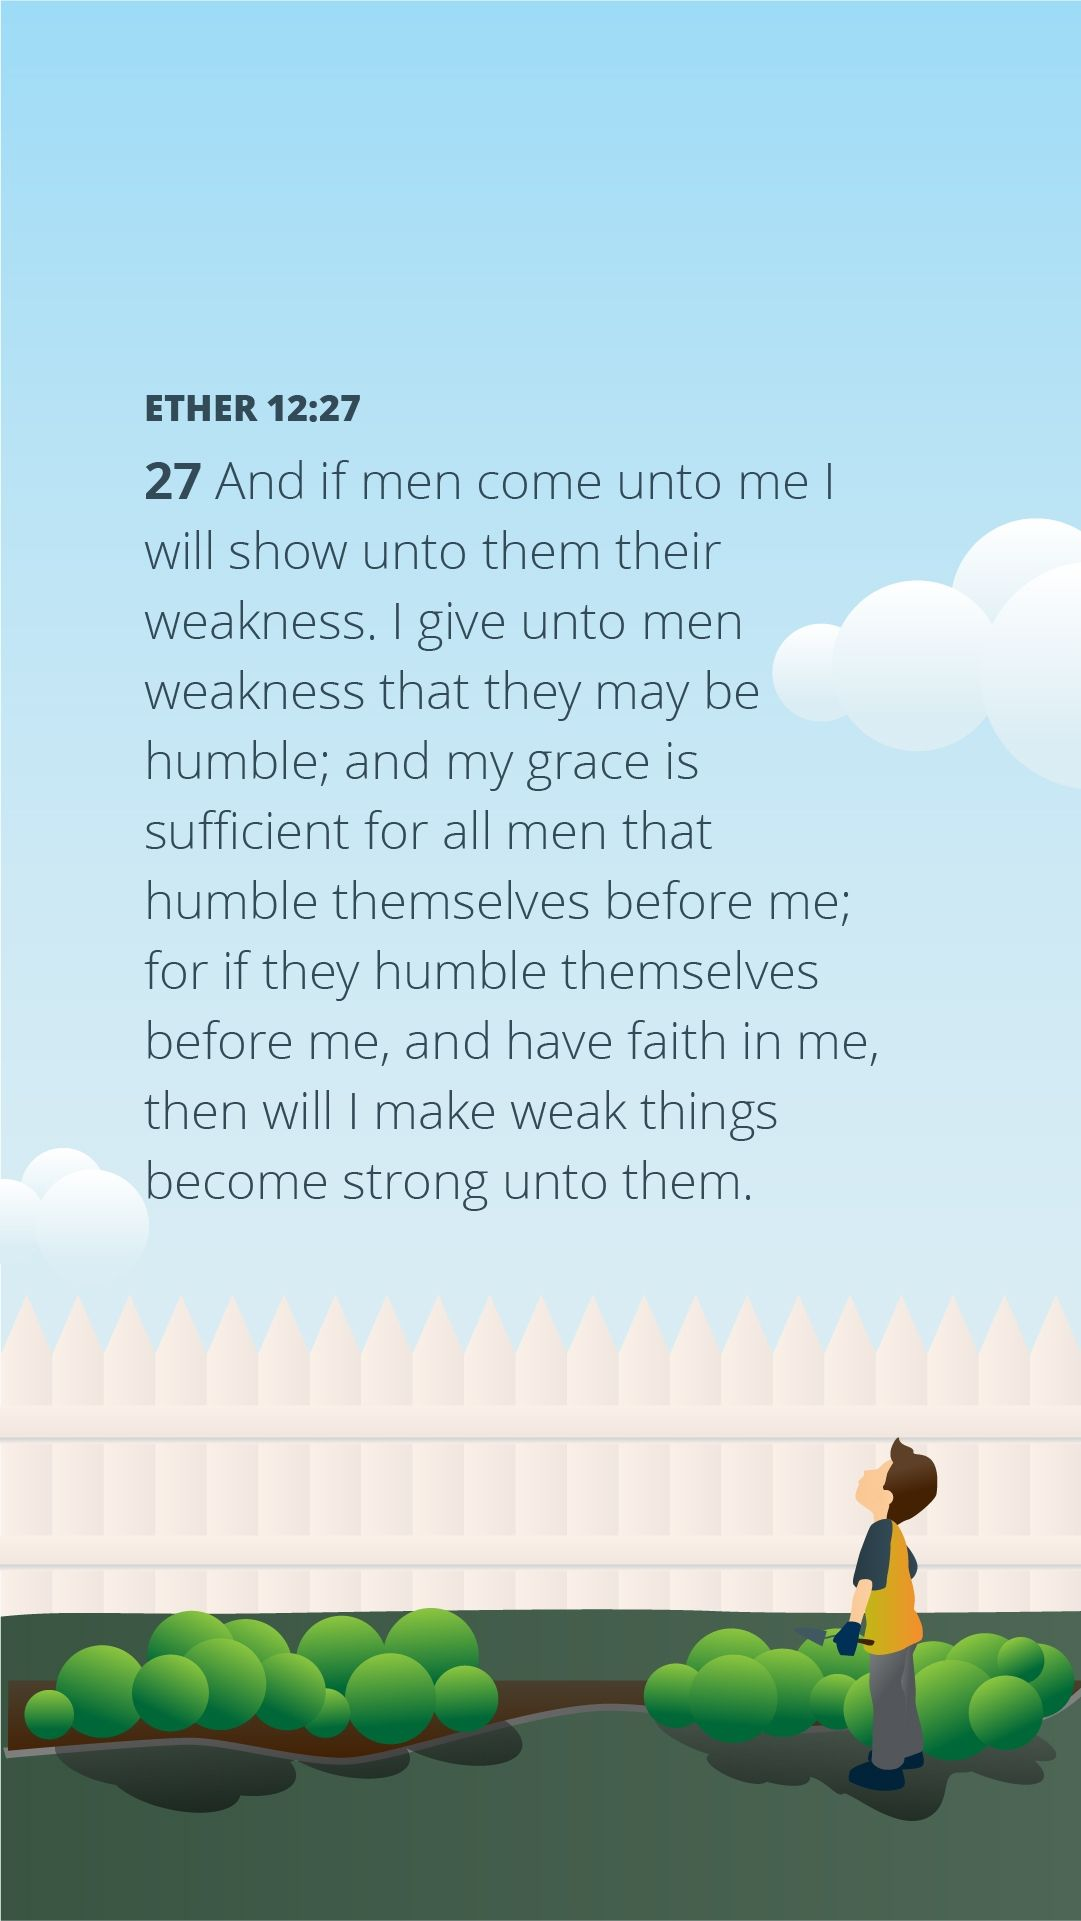 """""""And if men come unto me I will show unto them their weakness. I give unto men weakness that they may be humble; and my grace is sufficient for all men that humble themselves before me; for if they humble themselves before me, and have faith in me, then will I make weak things become strong unto them."""" — Ether 12:27"""